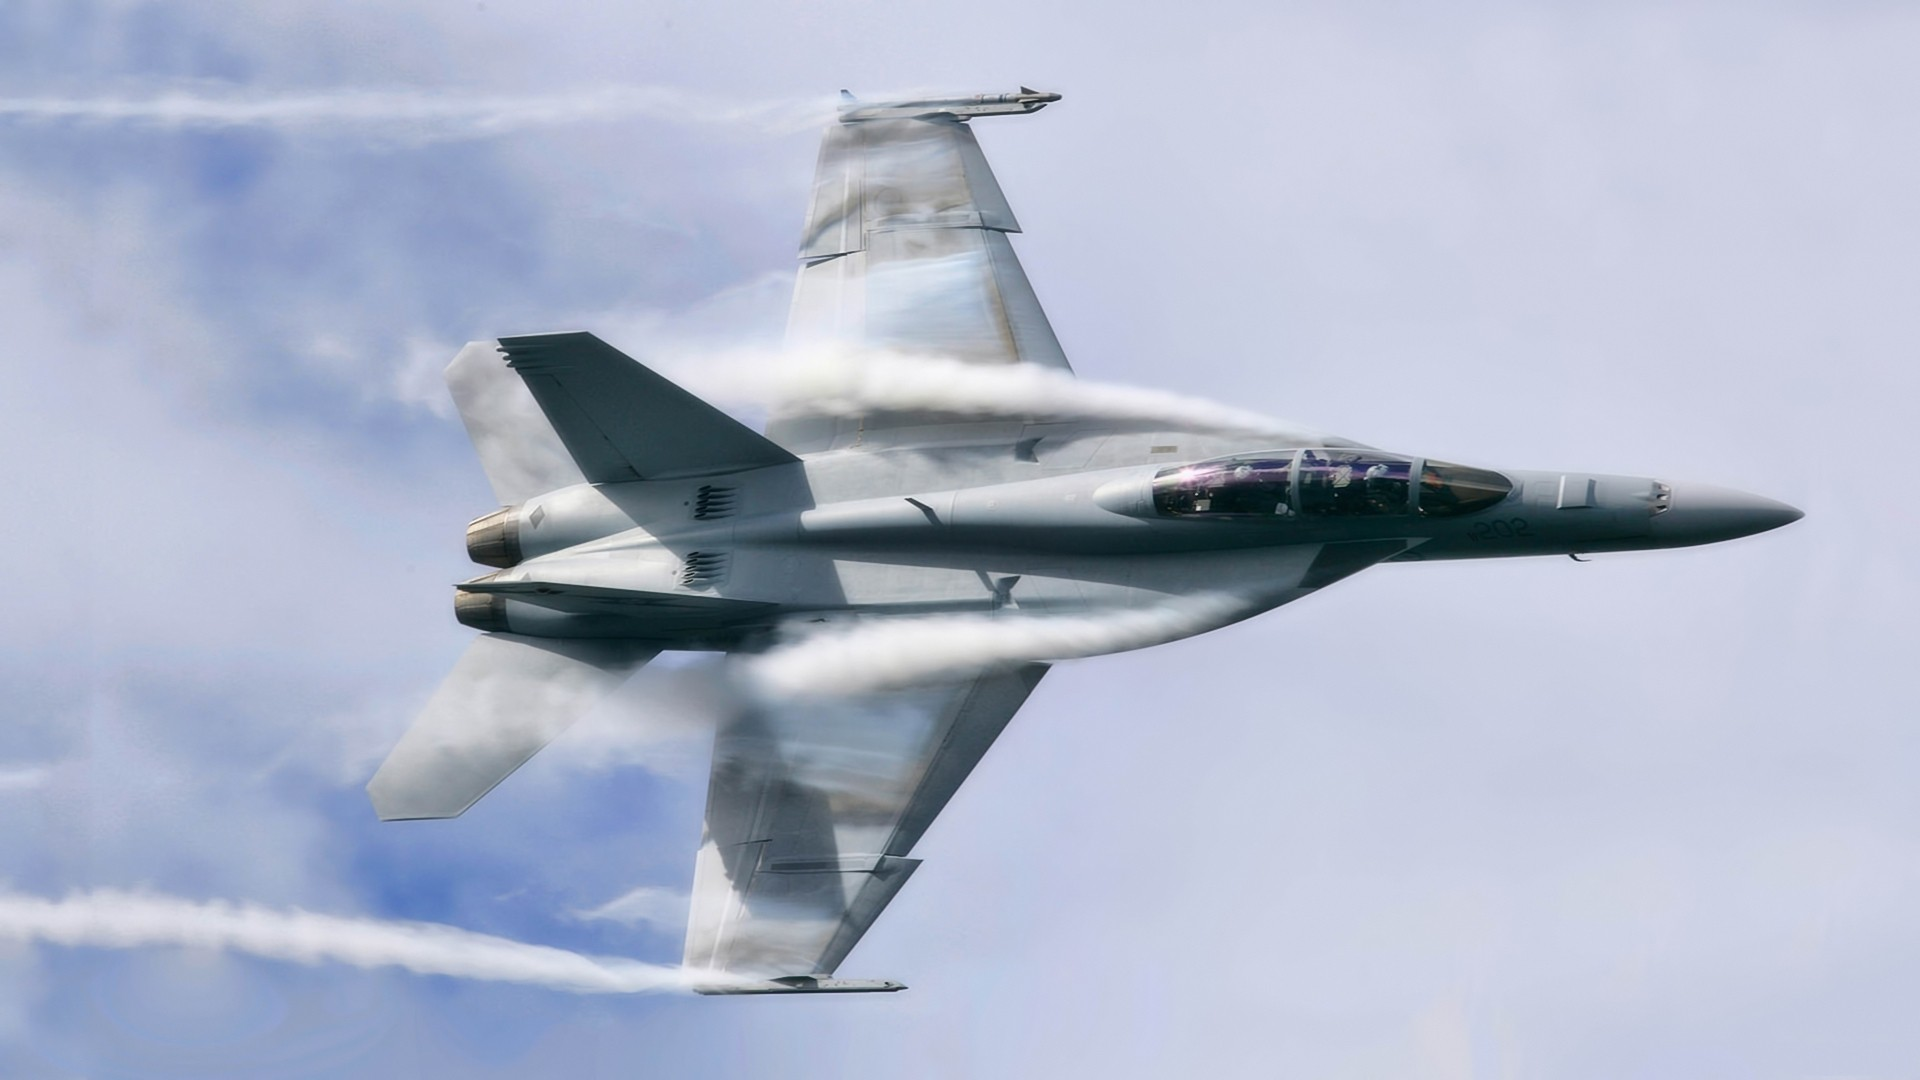 Aircraft military vehicles f 18 hornet fighter jets desktop